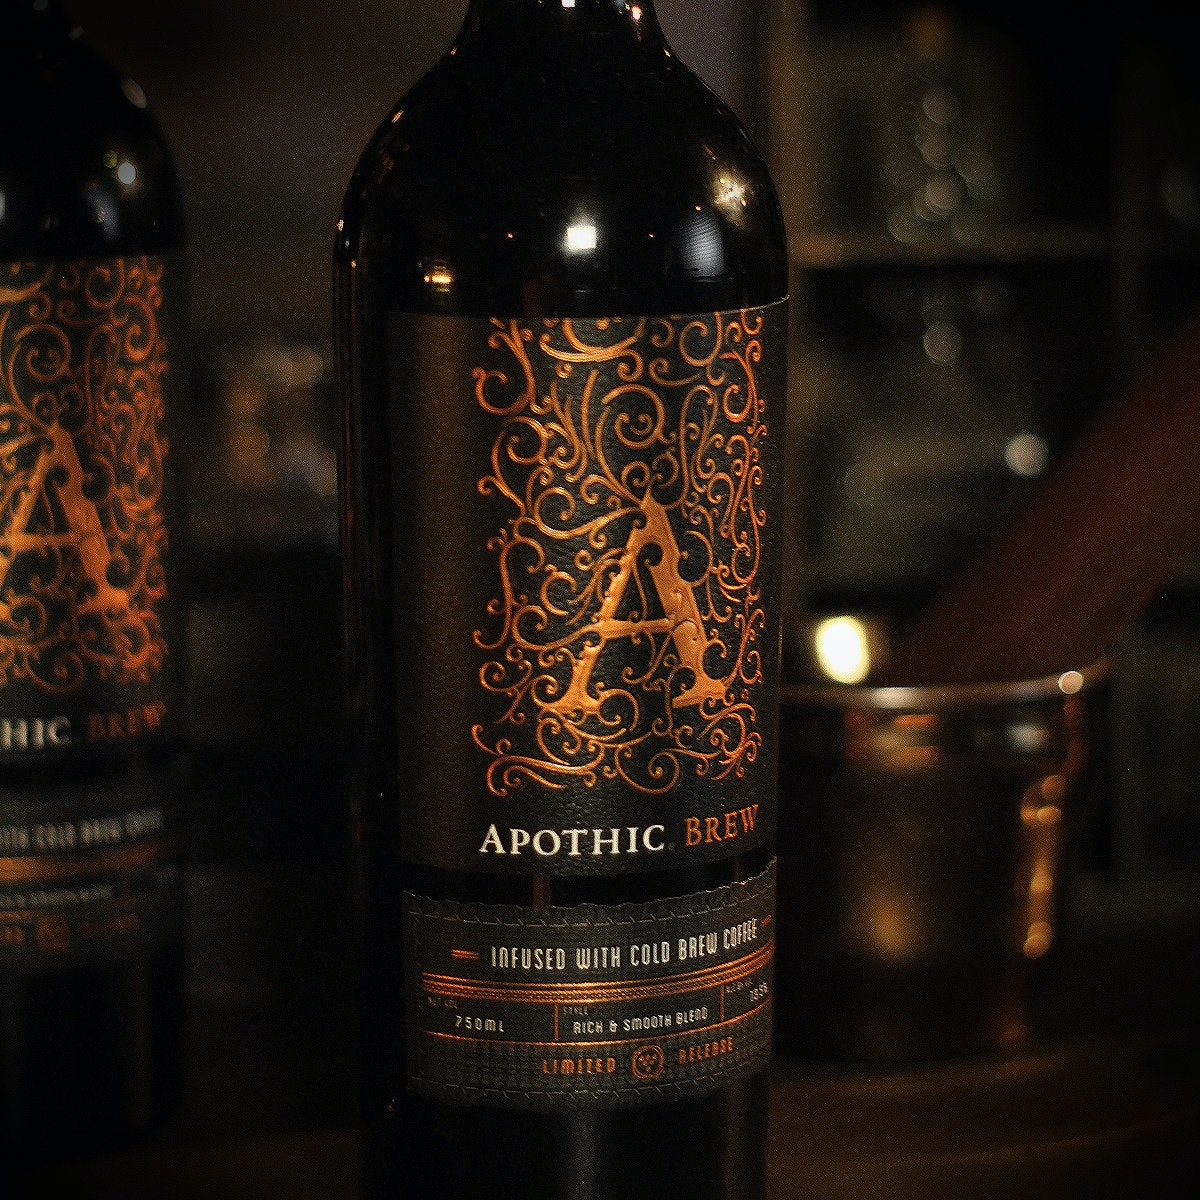 Heres Where To Buy Apothic Brew Wine If Youre Into Coffee Infused